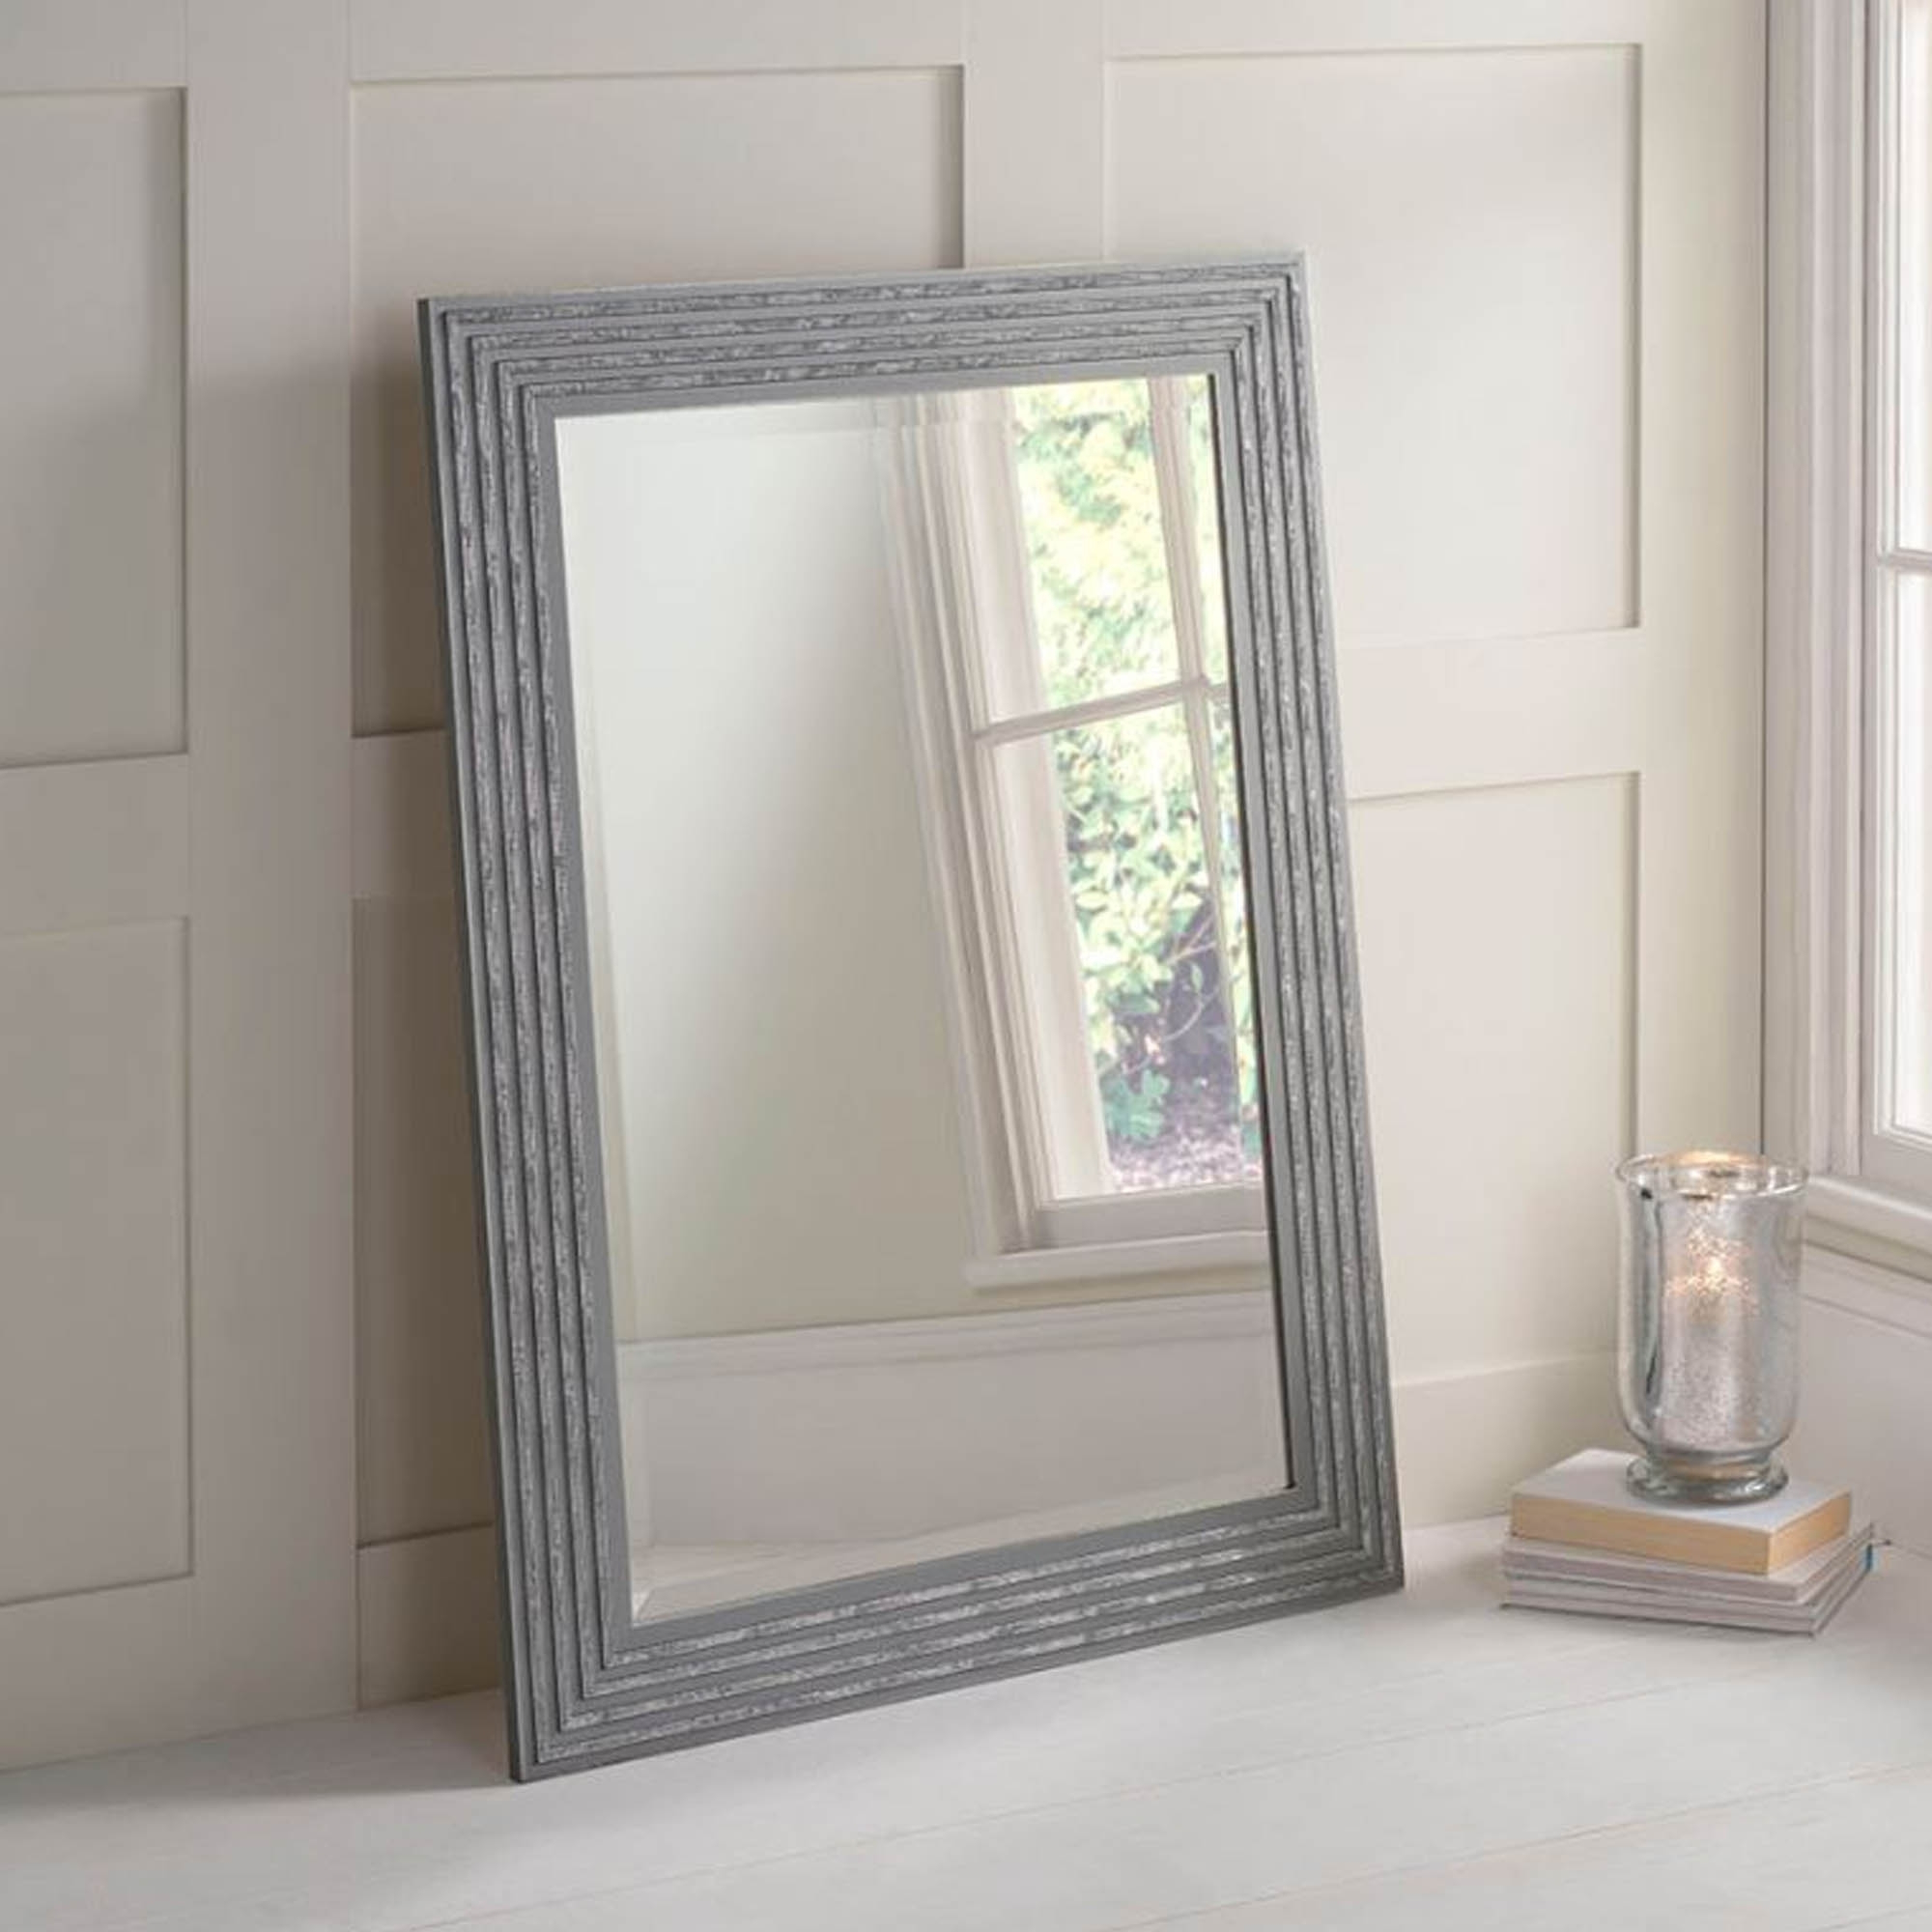 Fashionable Gray Wall Mirrors With Grey And Silver Decorative Wall Mirror (View 2 of 20)